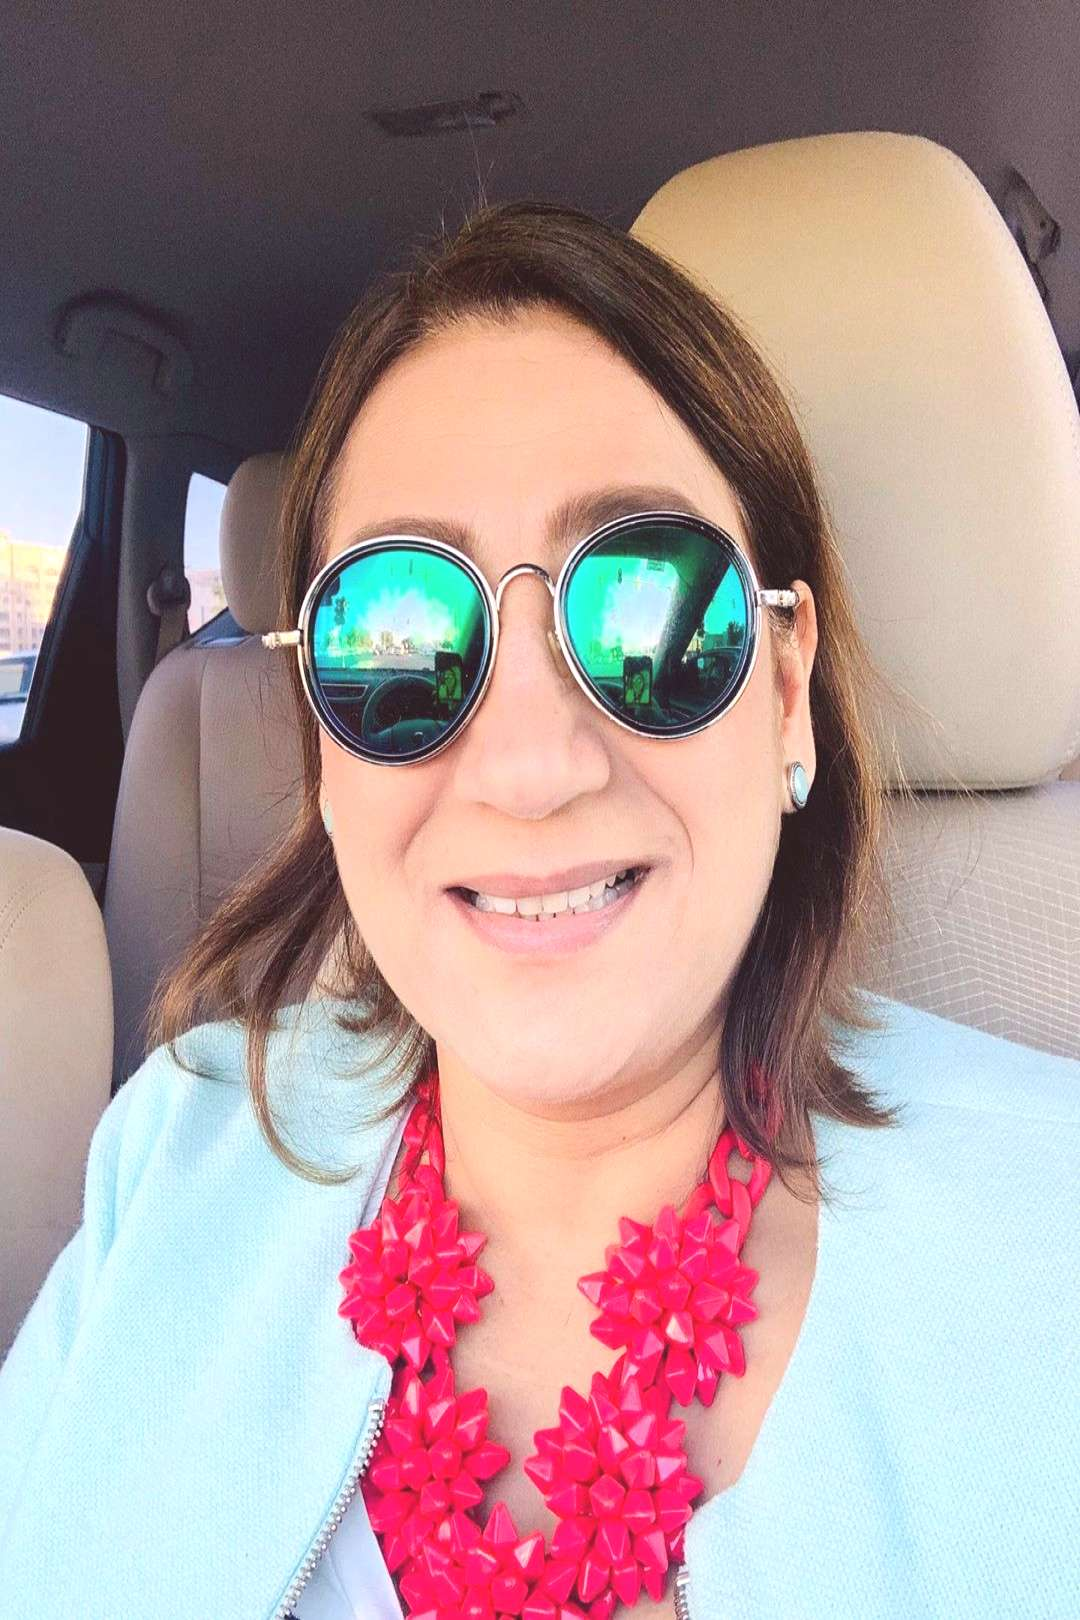 Ritu Chaturvedi on June 02 2020 1 person sunglasses and closeup